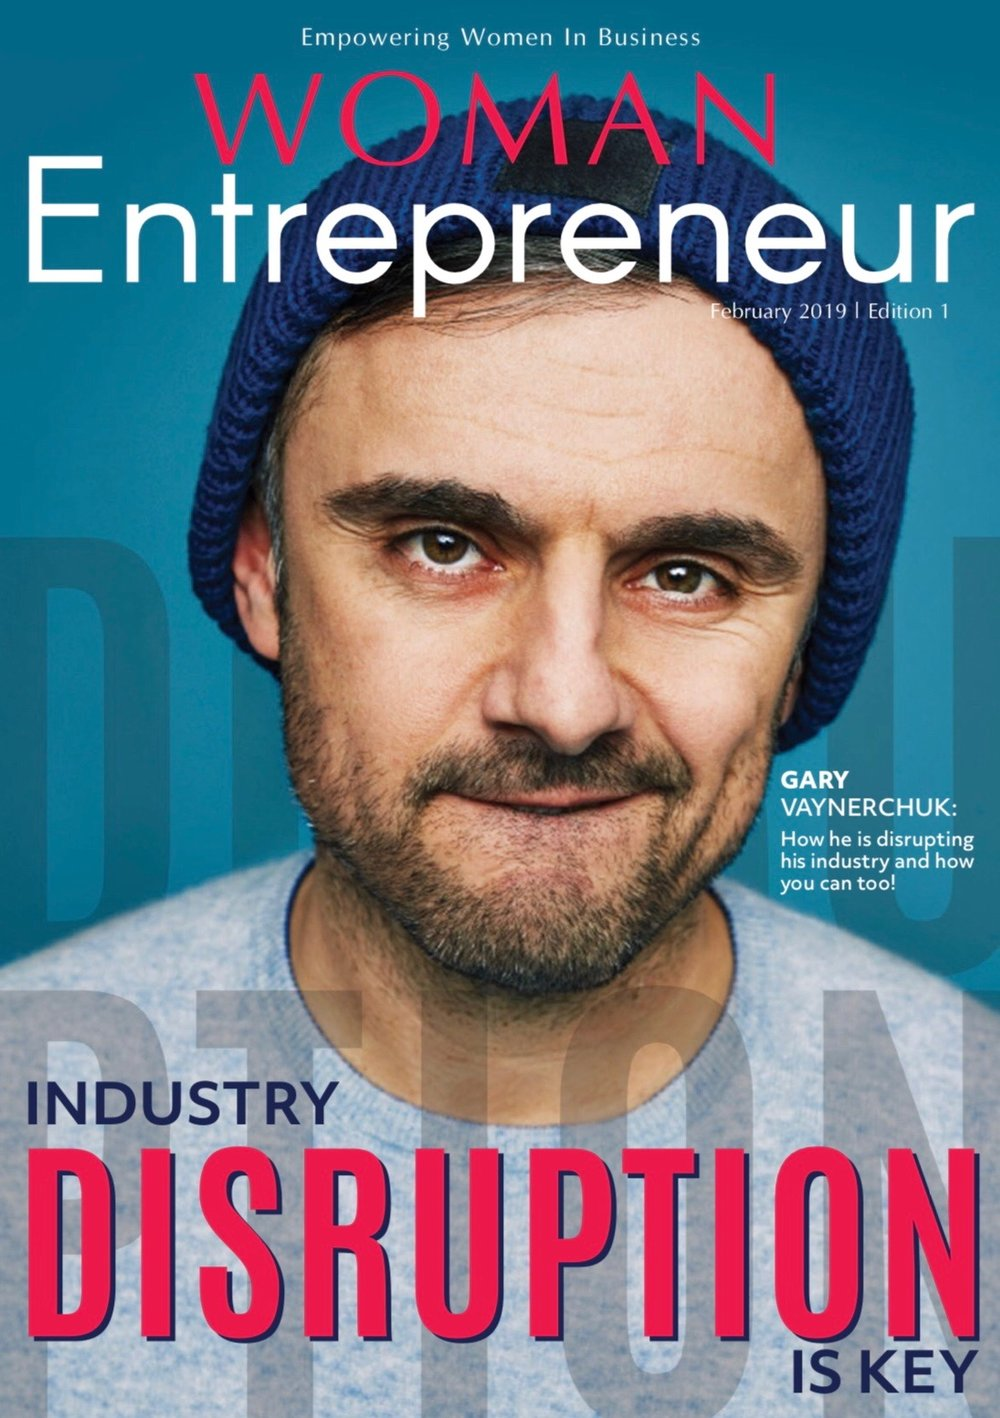 Woman Entrepreneur Gary Vee Cover  February Edition.JPG